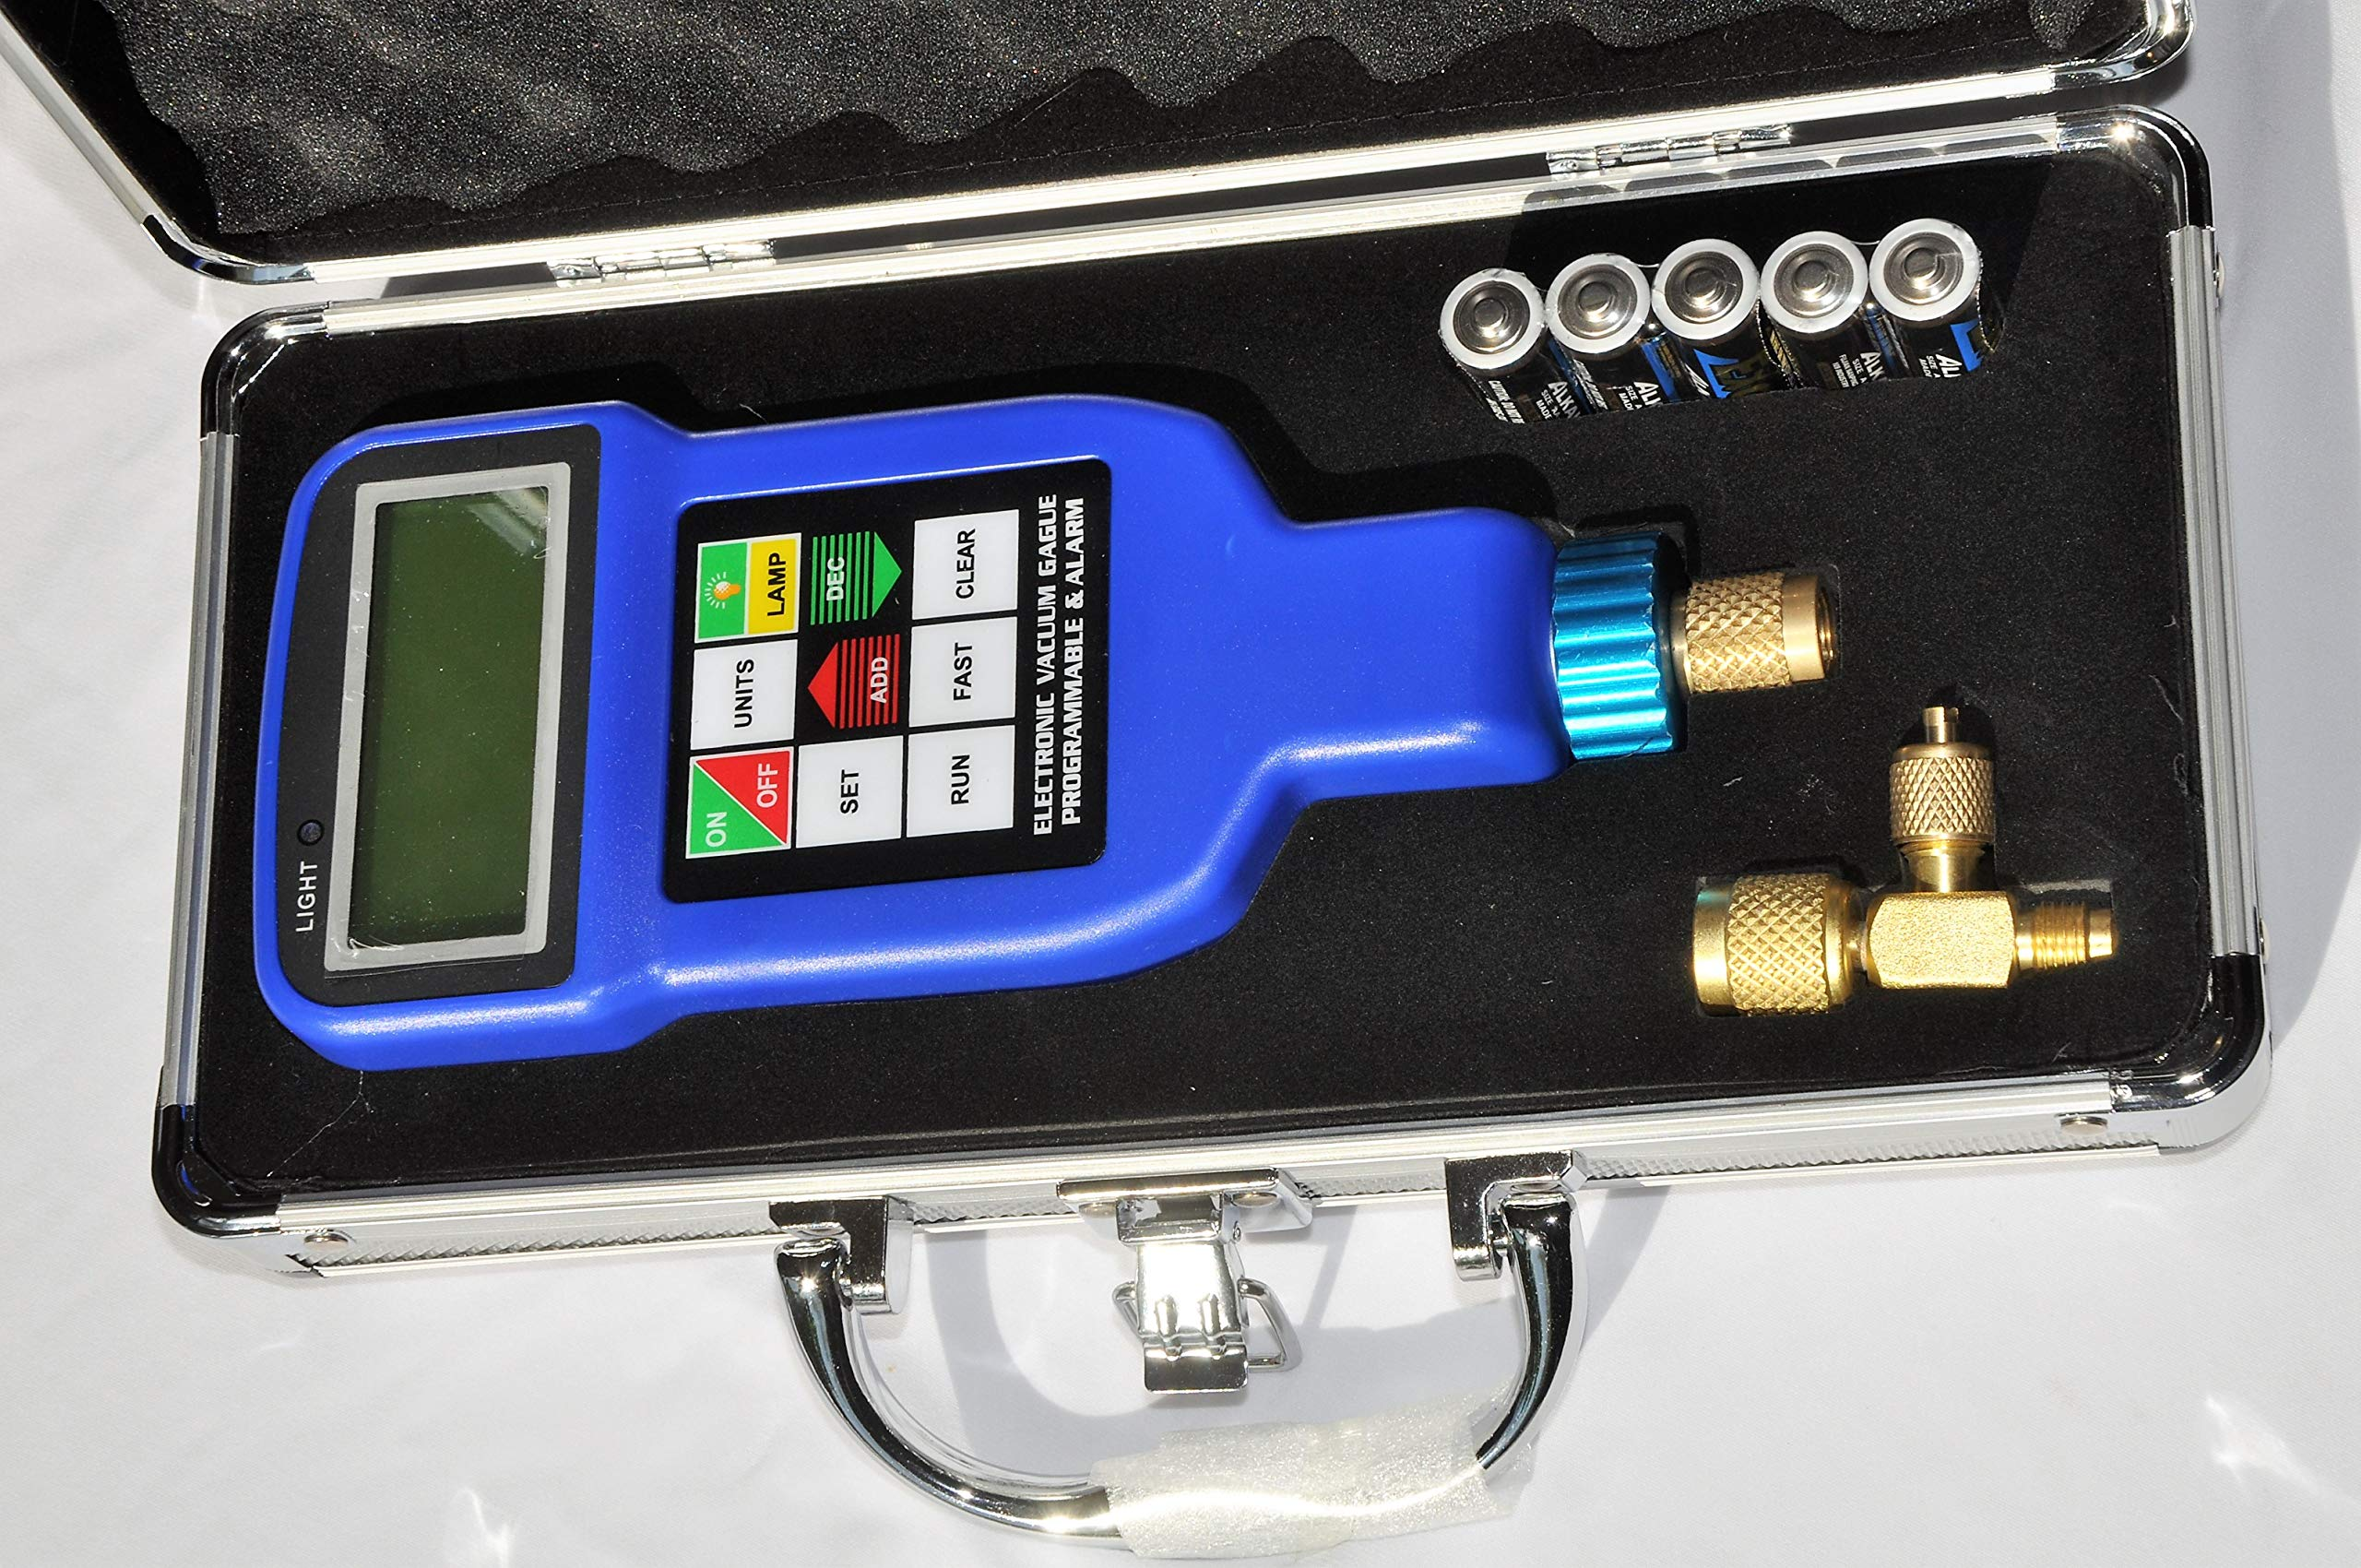 Deep Vacuum Micron Gauge/Digital Meter: AC HVAC Air Condition Refrigeration System Evacuation Optimum Test Tool, Most Accurate on The Market by VIOT (Image #1)